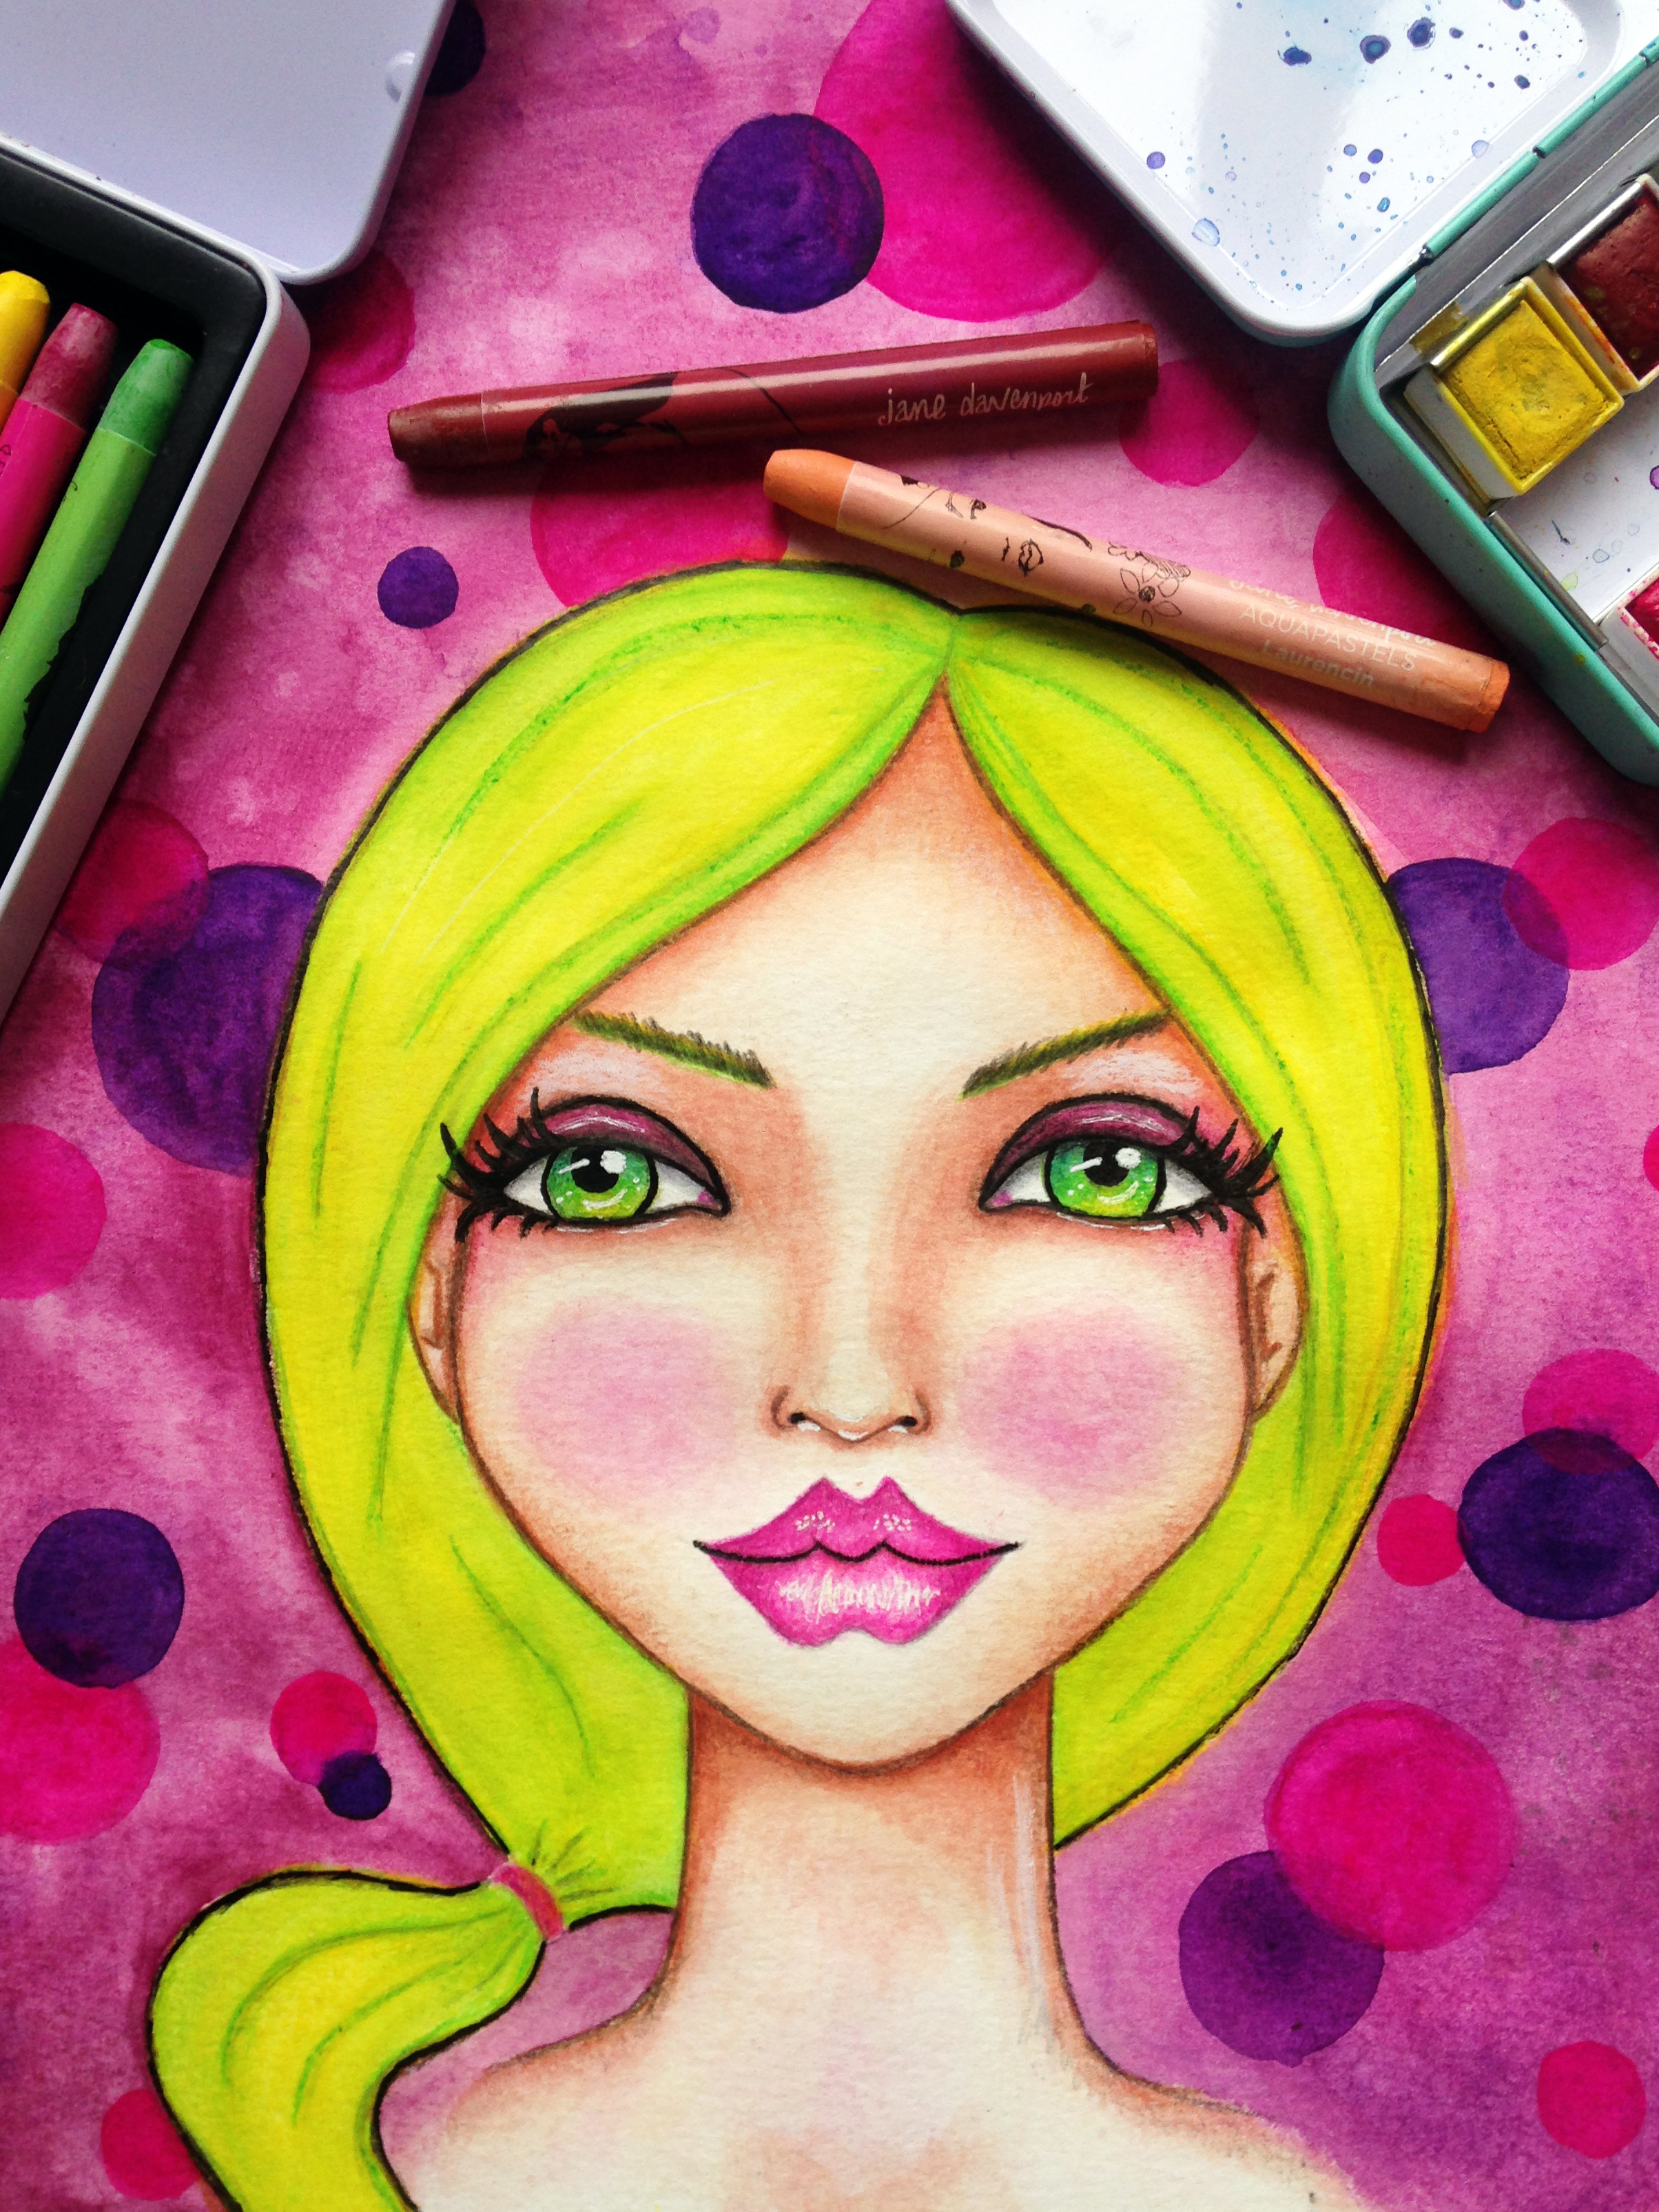 Fun Fab Face 5/100. Blonde hair, green-eyed whimsical girl surrounded by pink and purple bubbles. Artwork By Corrinna Johnson. 100 Fun Fab Faces Drawing Challenge Hosted By Karen Campbell.